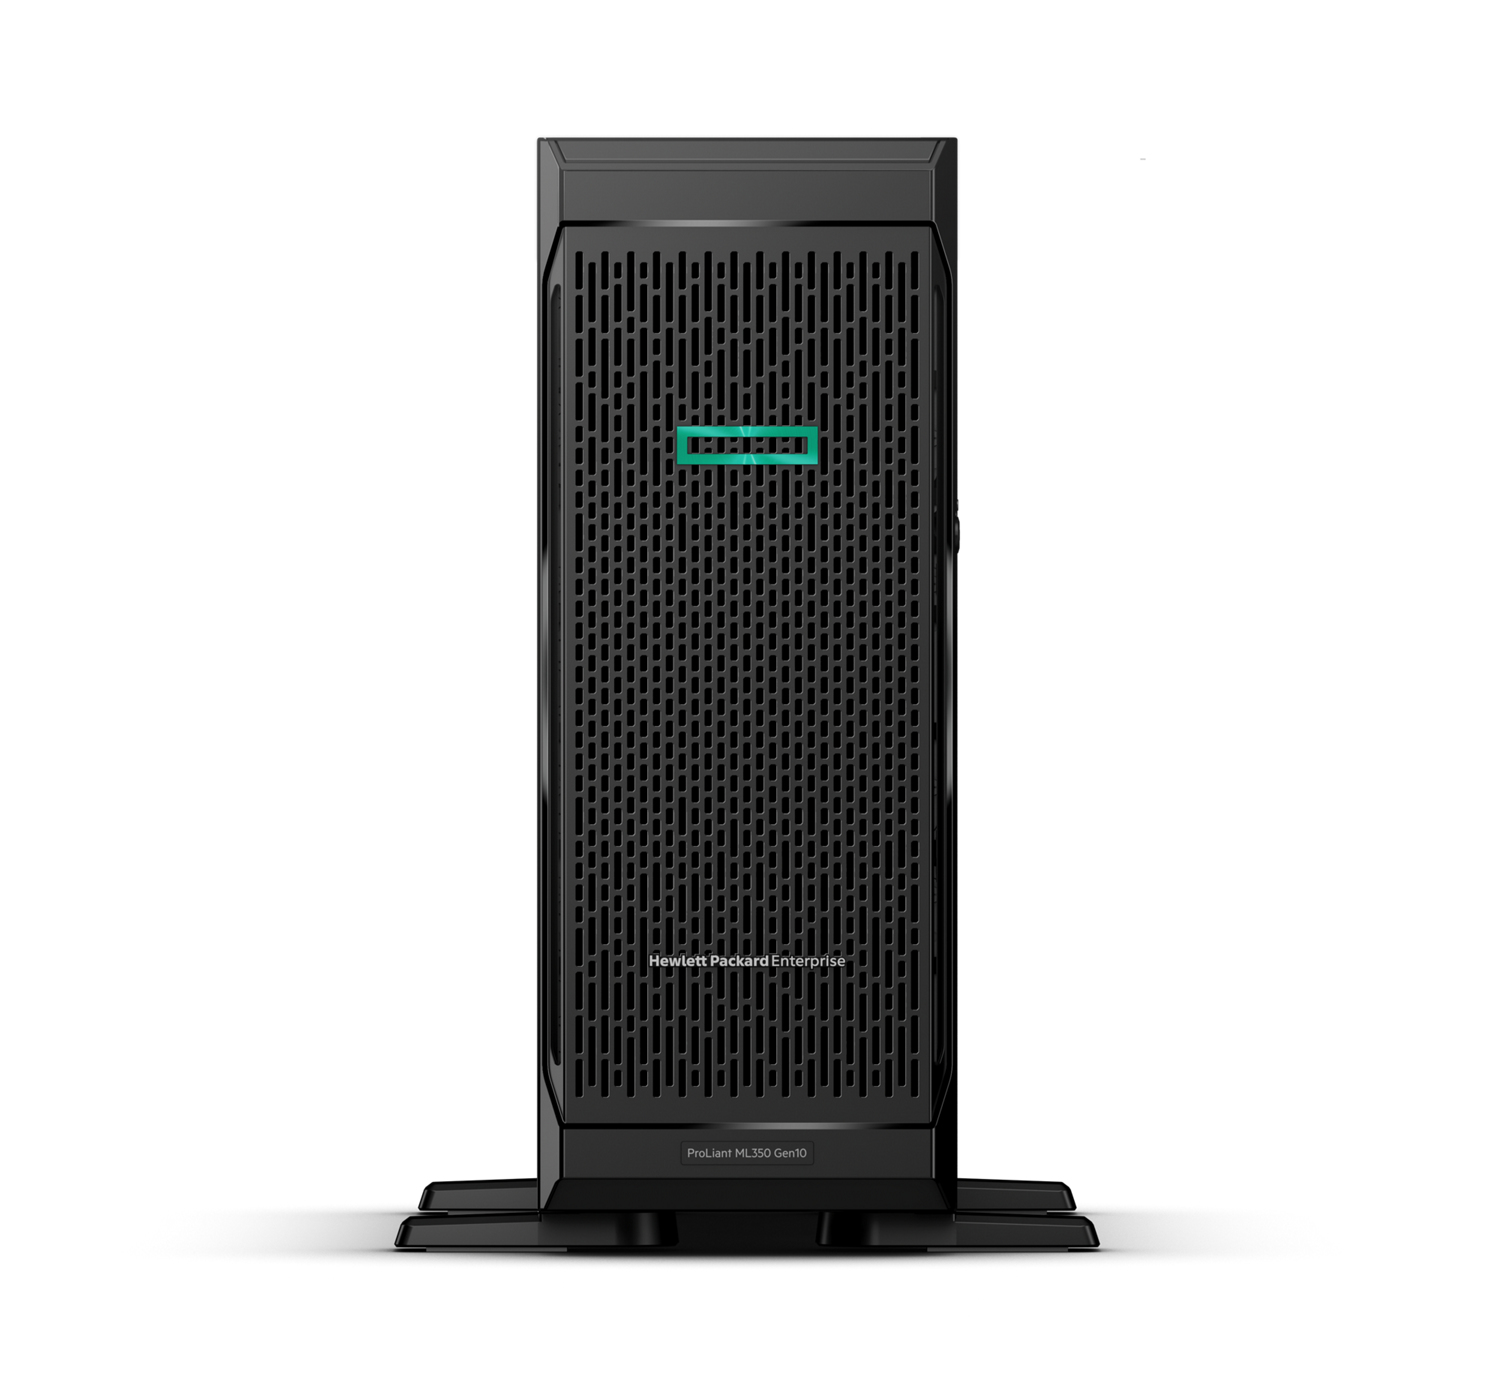 Hewlett Packard Enterprise ProLiant ML350 Gen10 servidor Intel® Xeon® Silver 2,4 GHz 32 GB DDR4-SDRAM 48 TB Torre (4U) 800 W